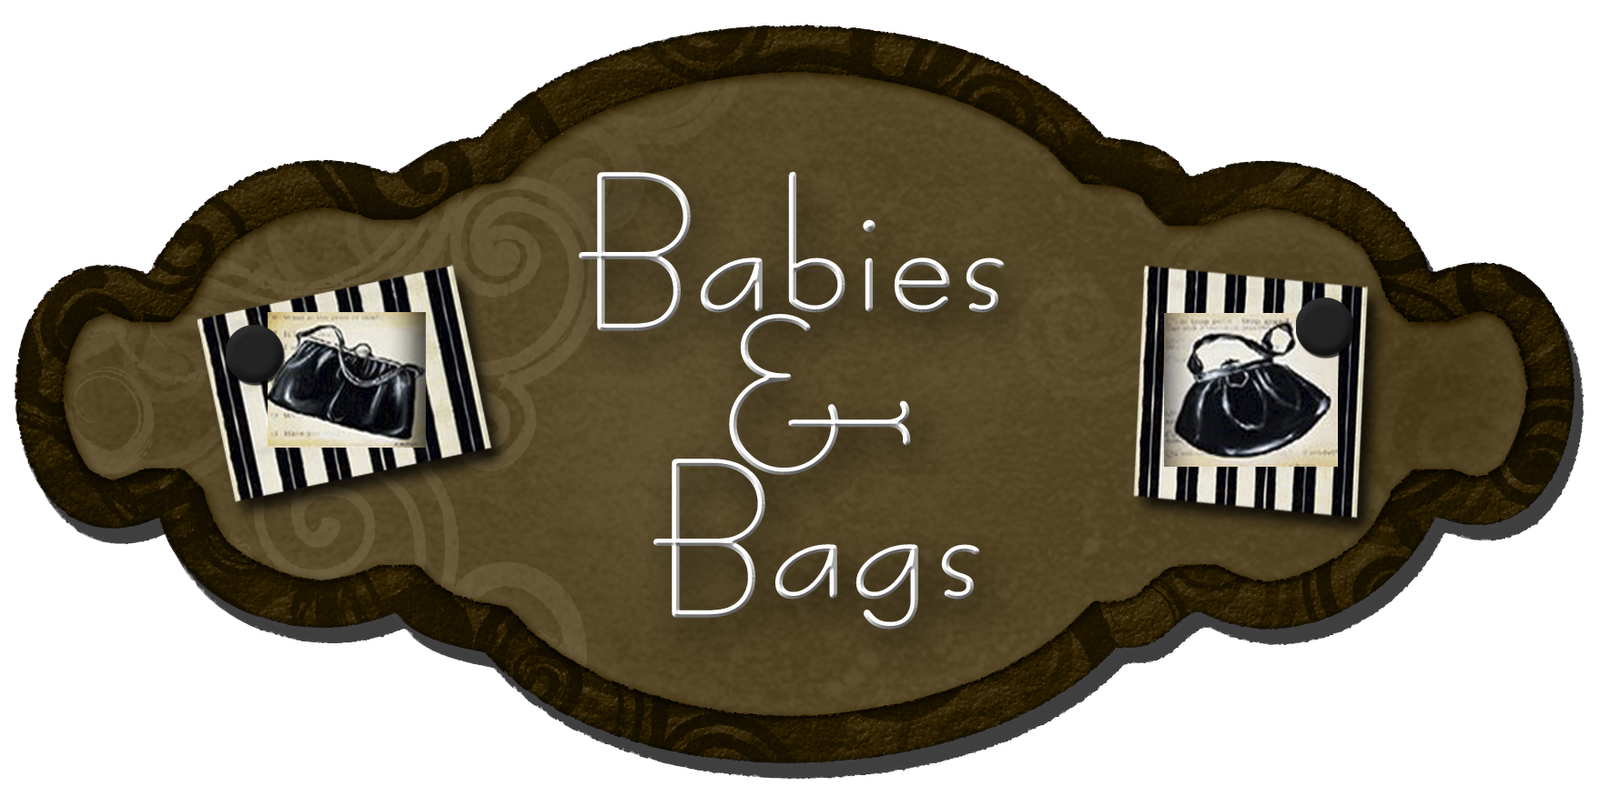 Babies and bags